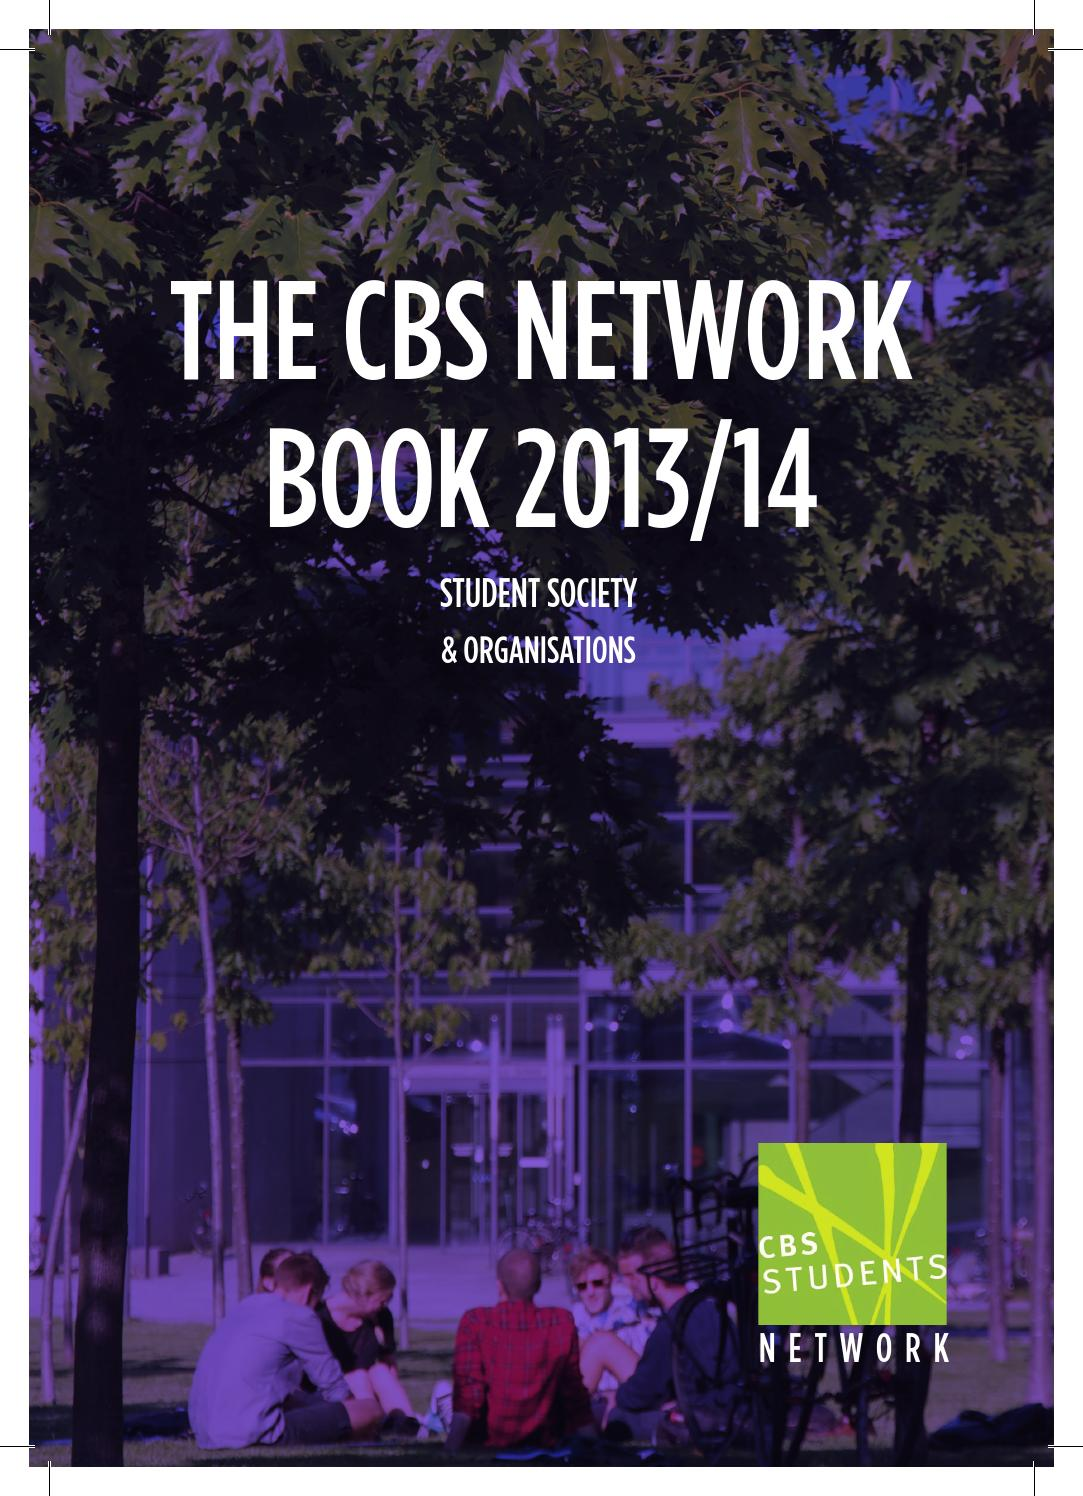 The CBS Networkbook 2013/14 by CBS Students - issuu